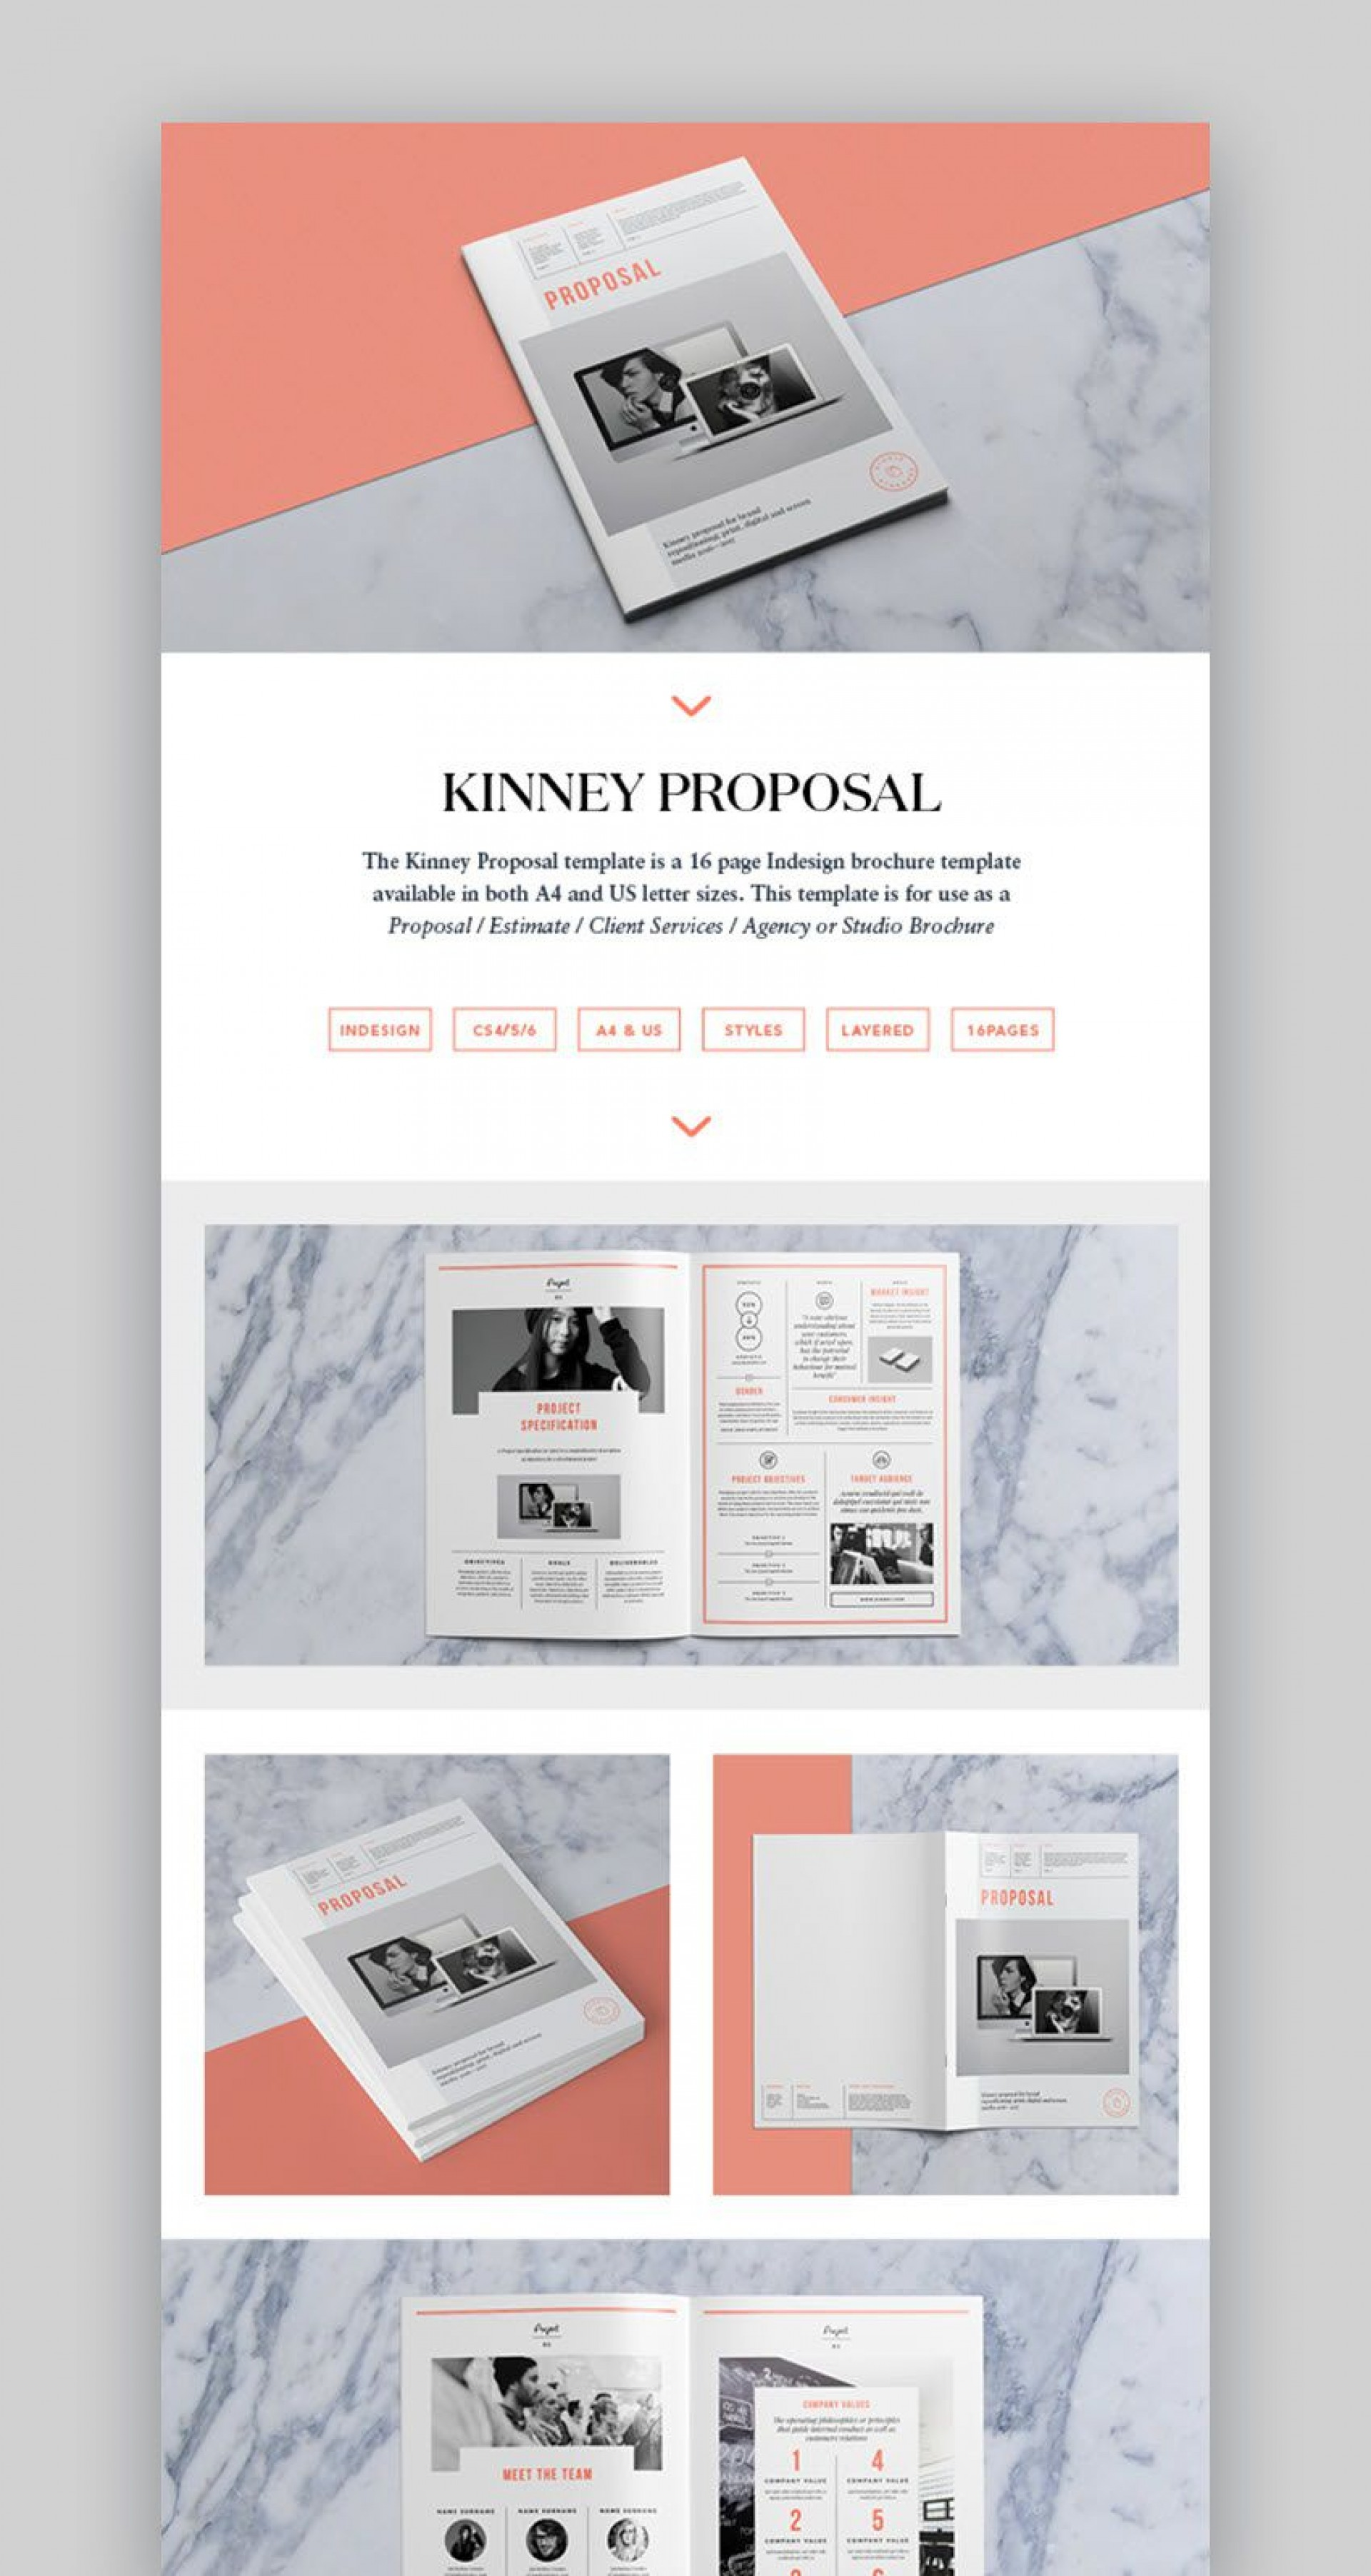 003 Remarkable Graphic Design Proposal Template Doc Free Highest Quality 1920